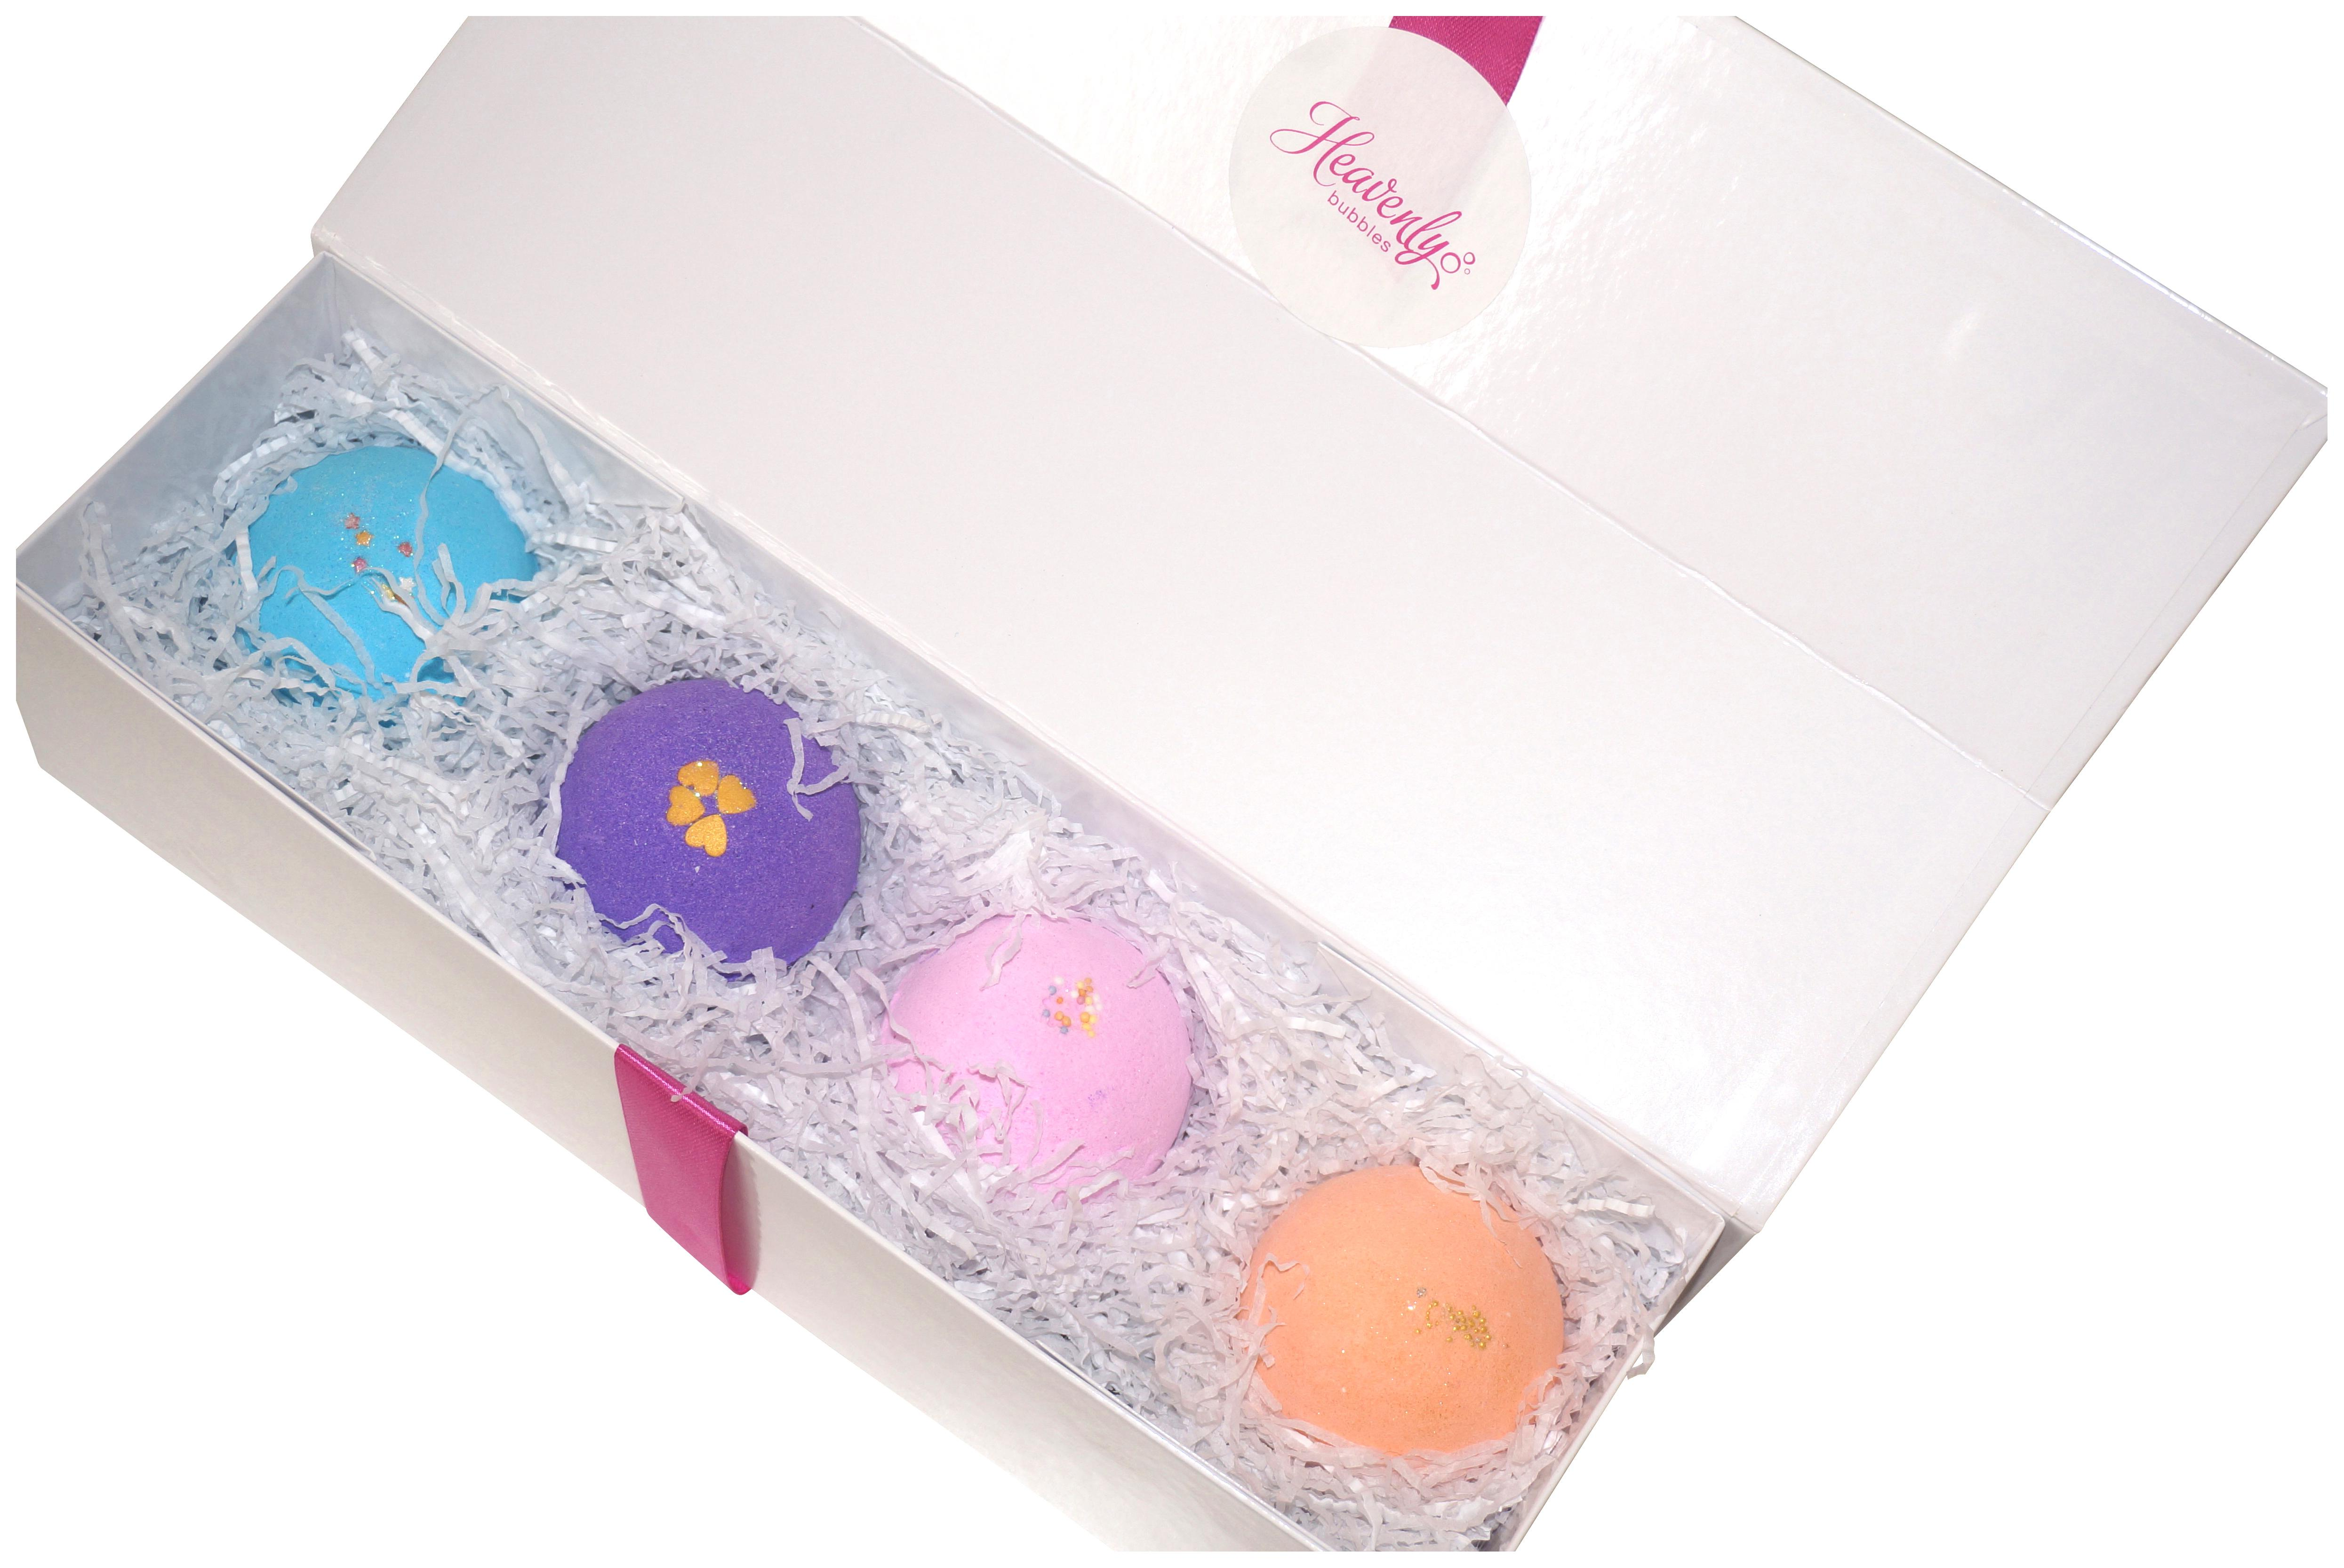 bath bomb gift set uk